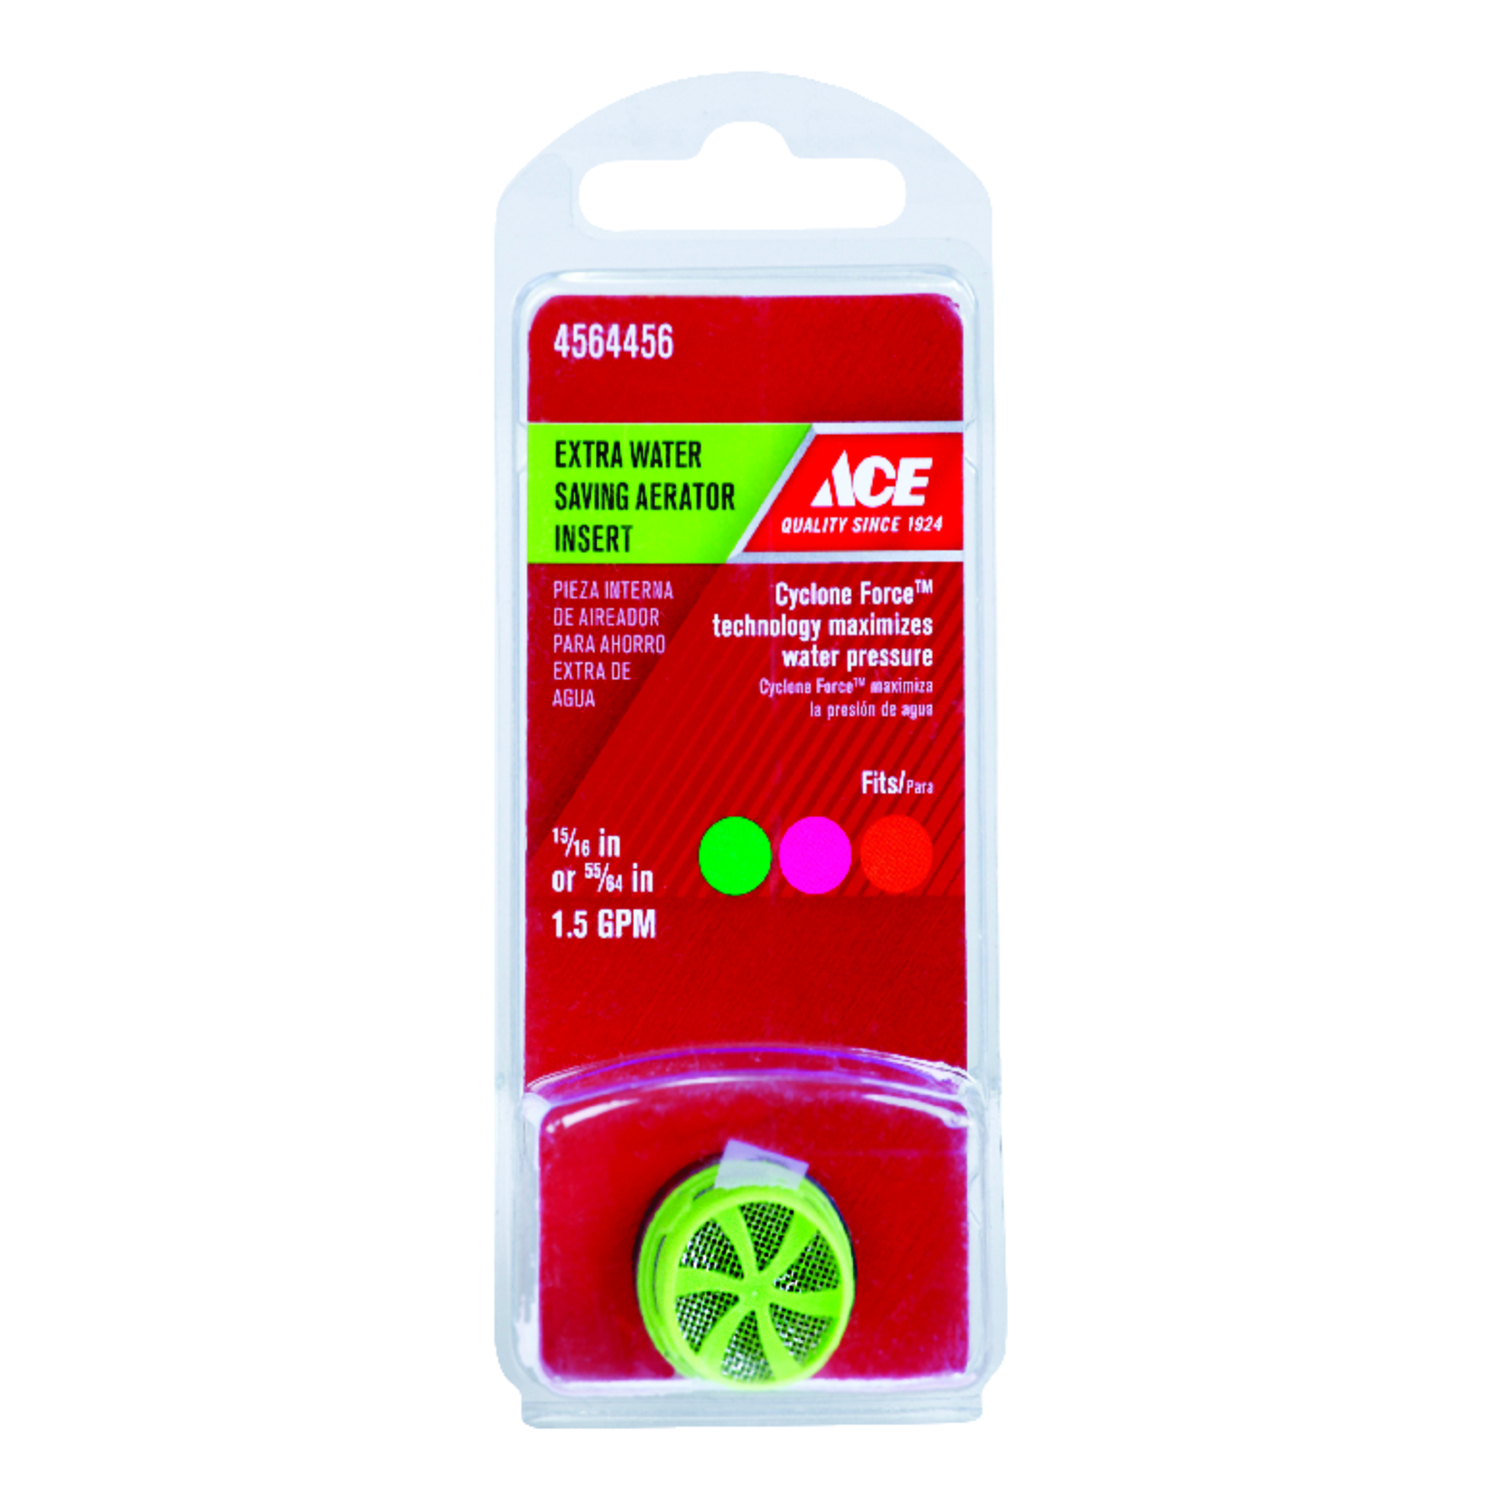 Ace  Aerator Insert  15/16 in.  x 55/64 in.  Green